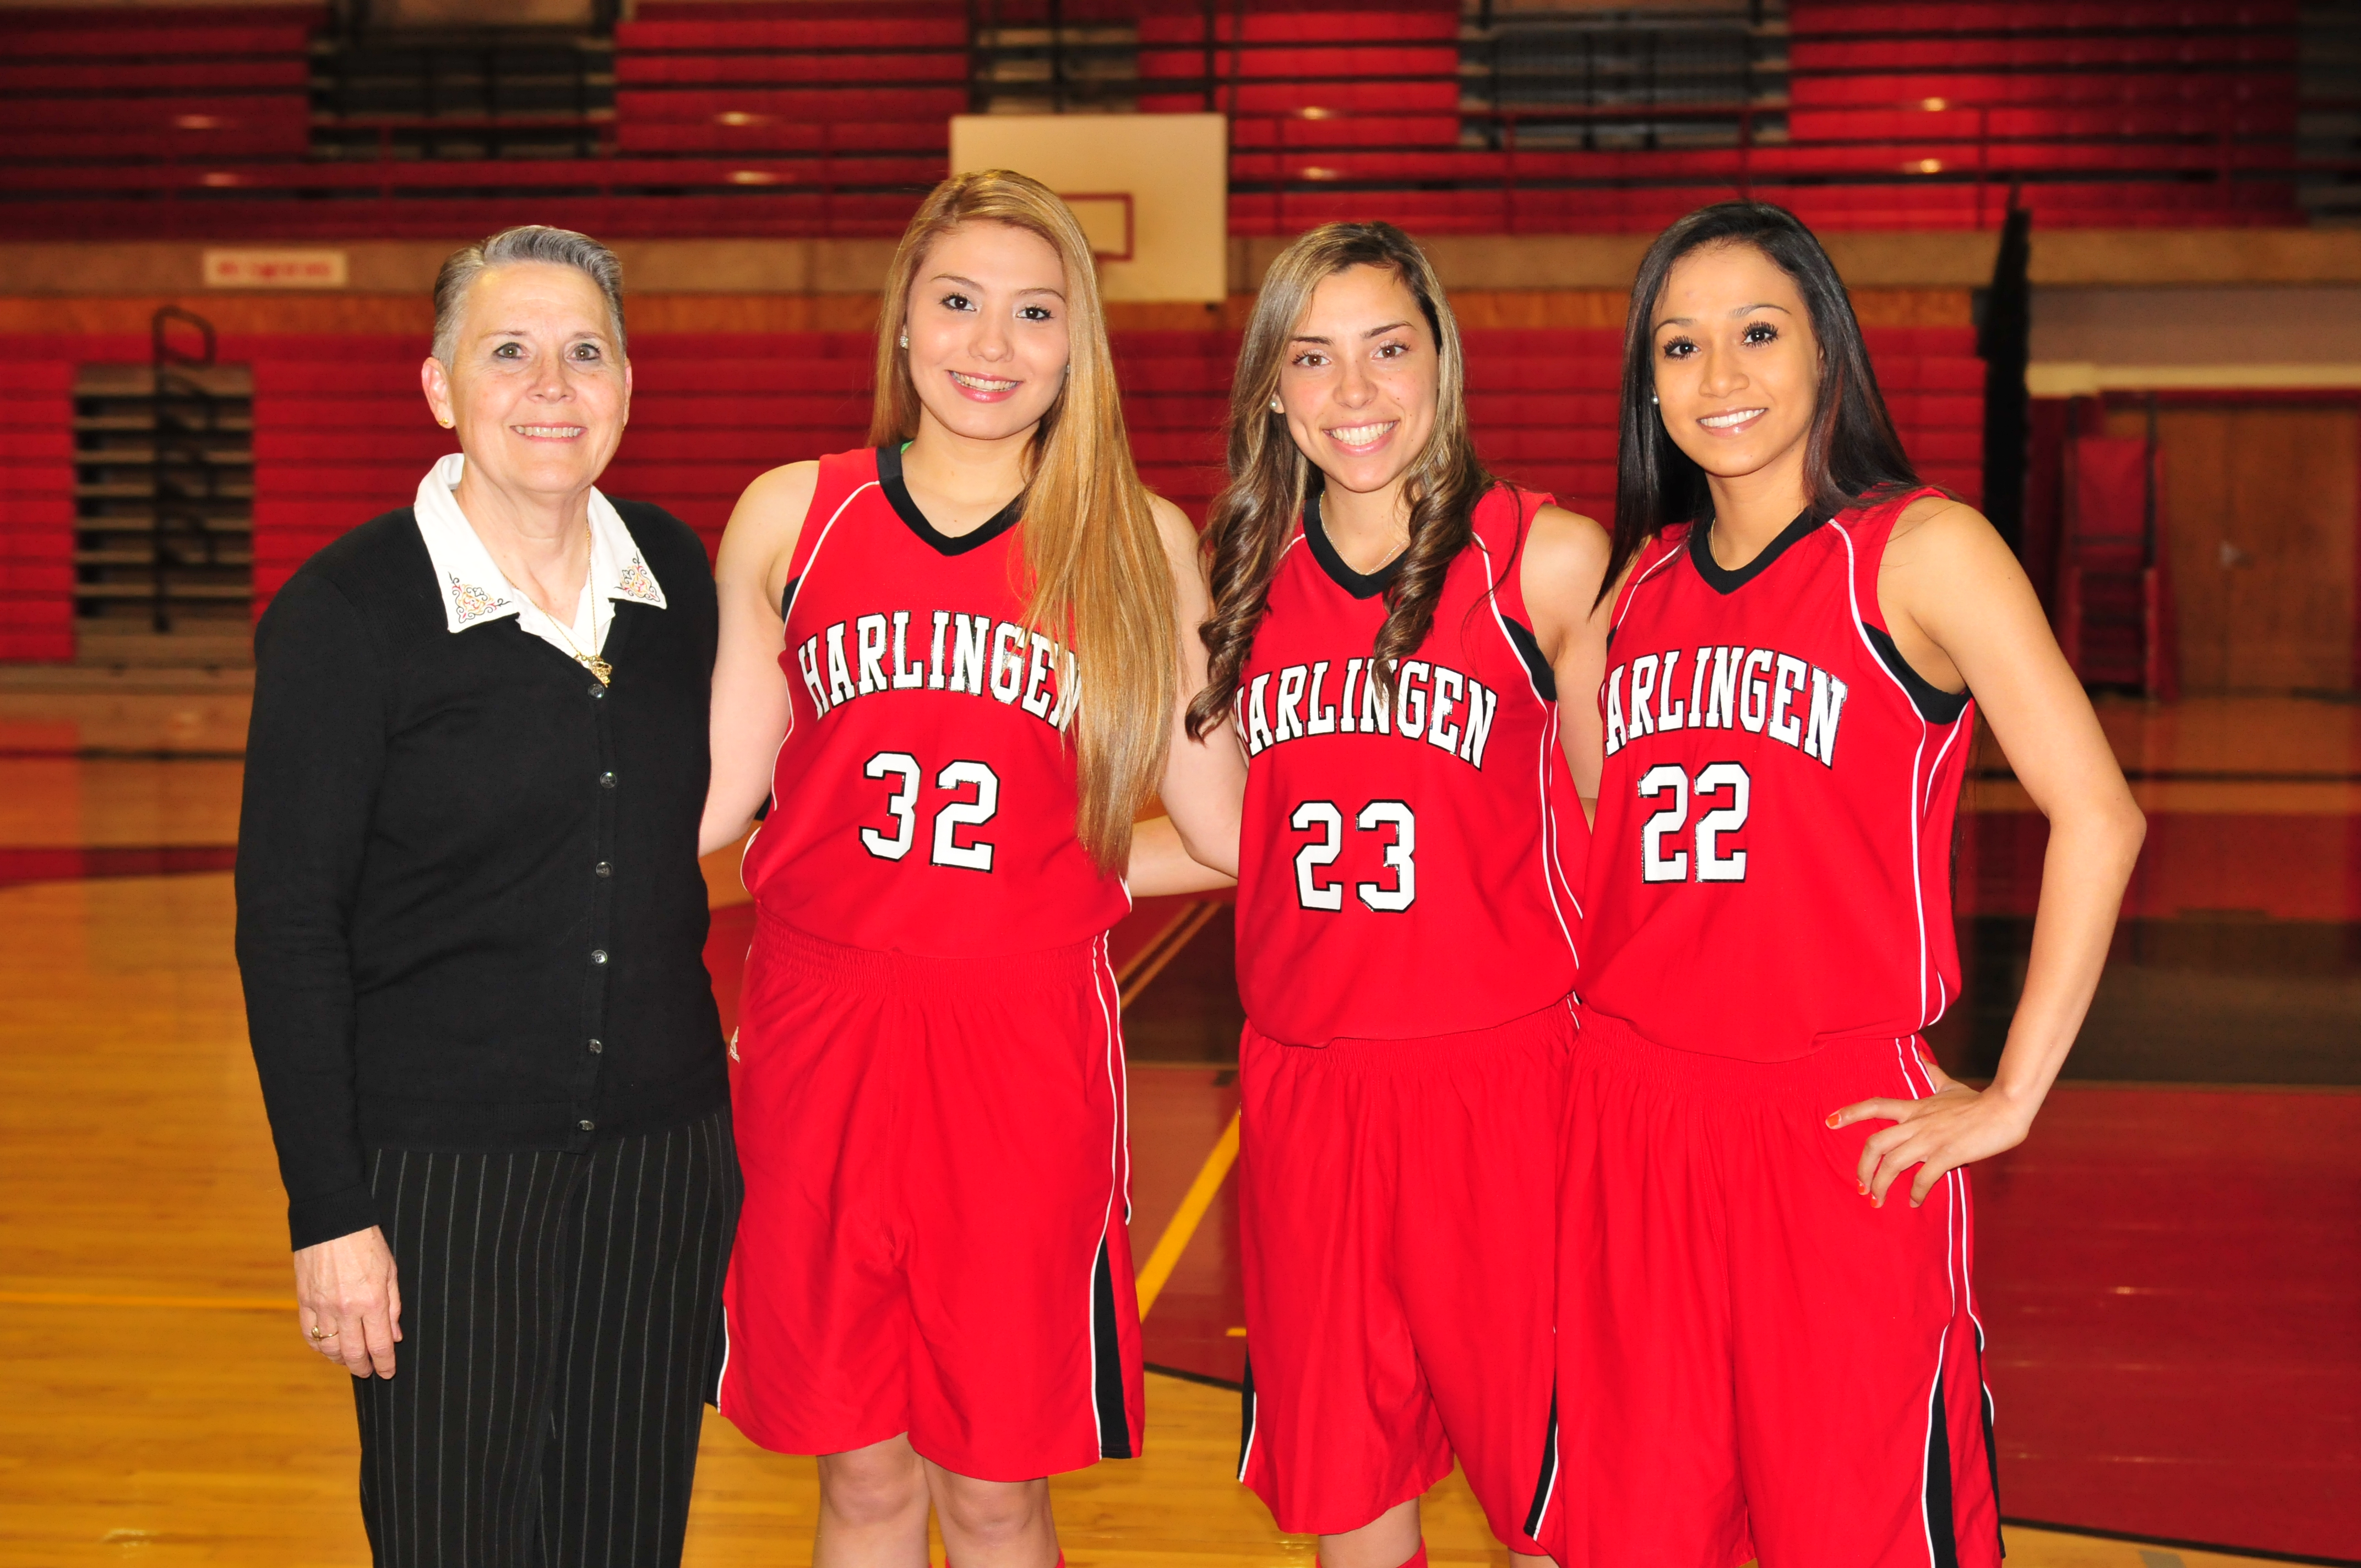 HHS girls basketball players selected for All Star teams